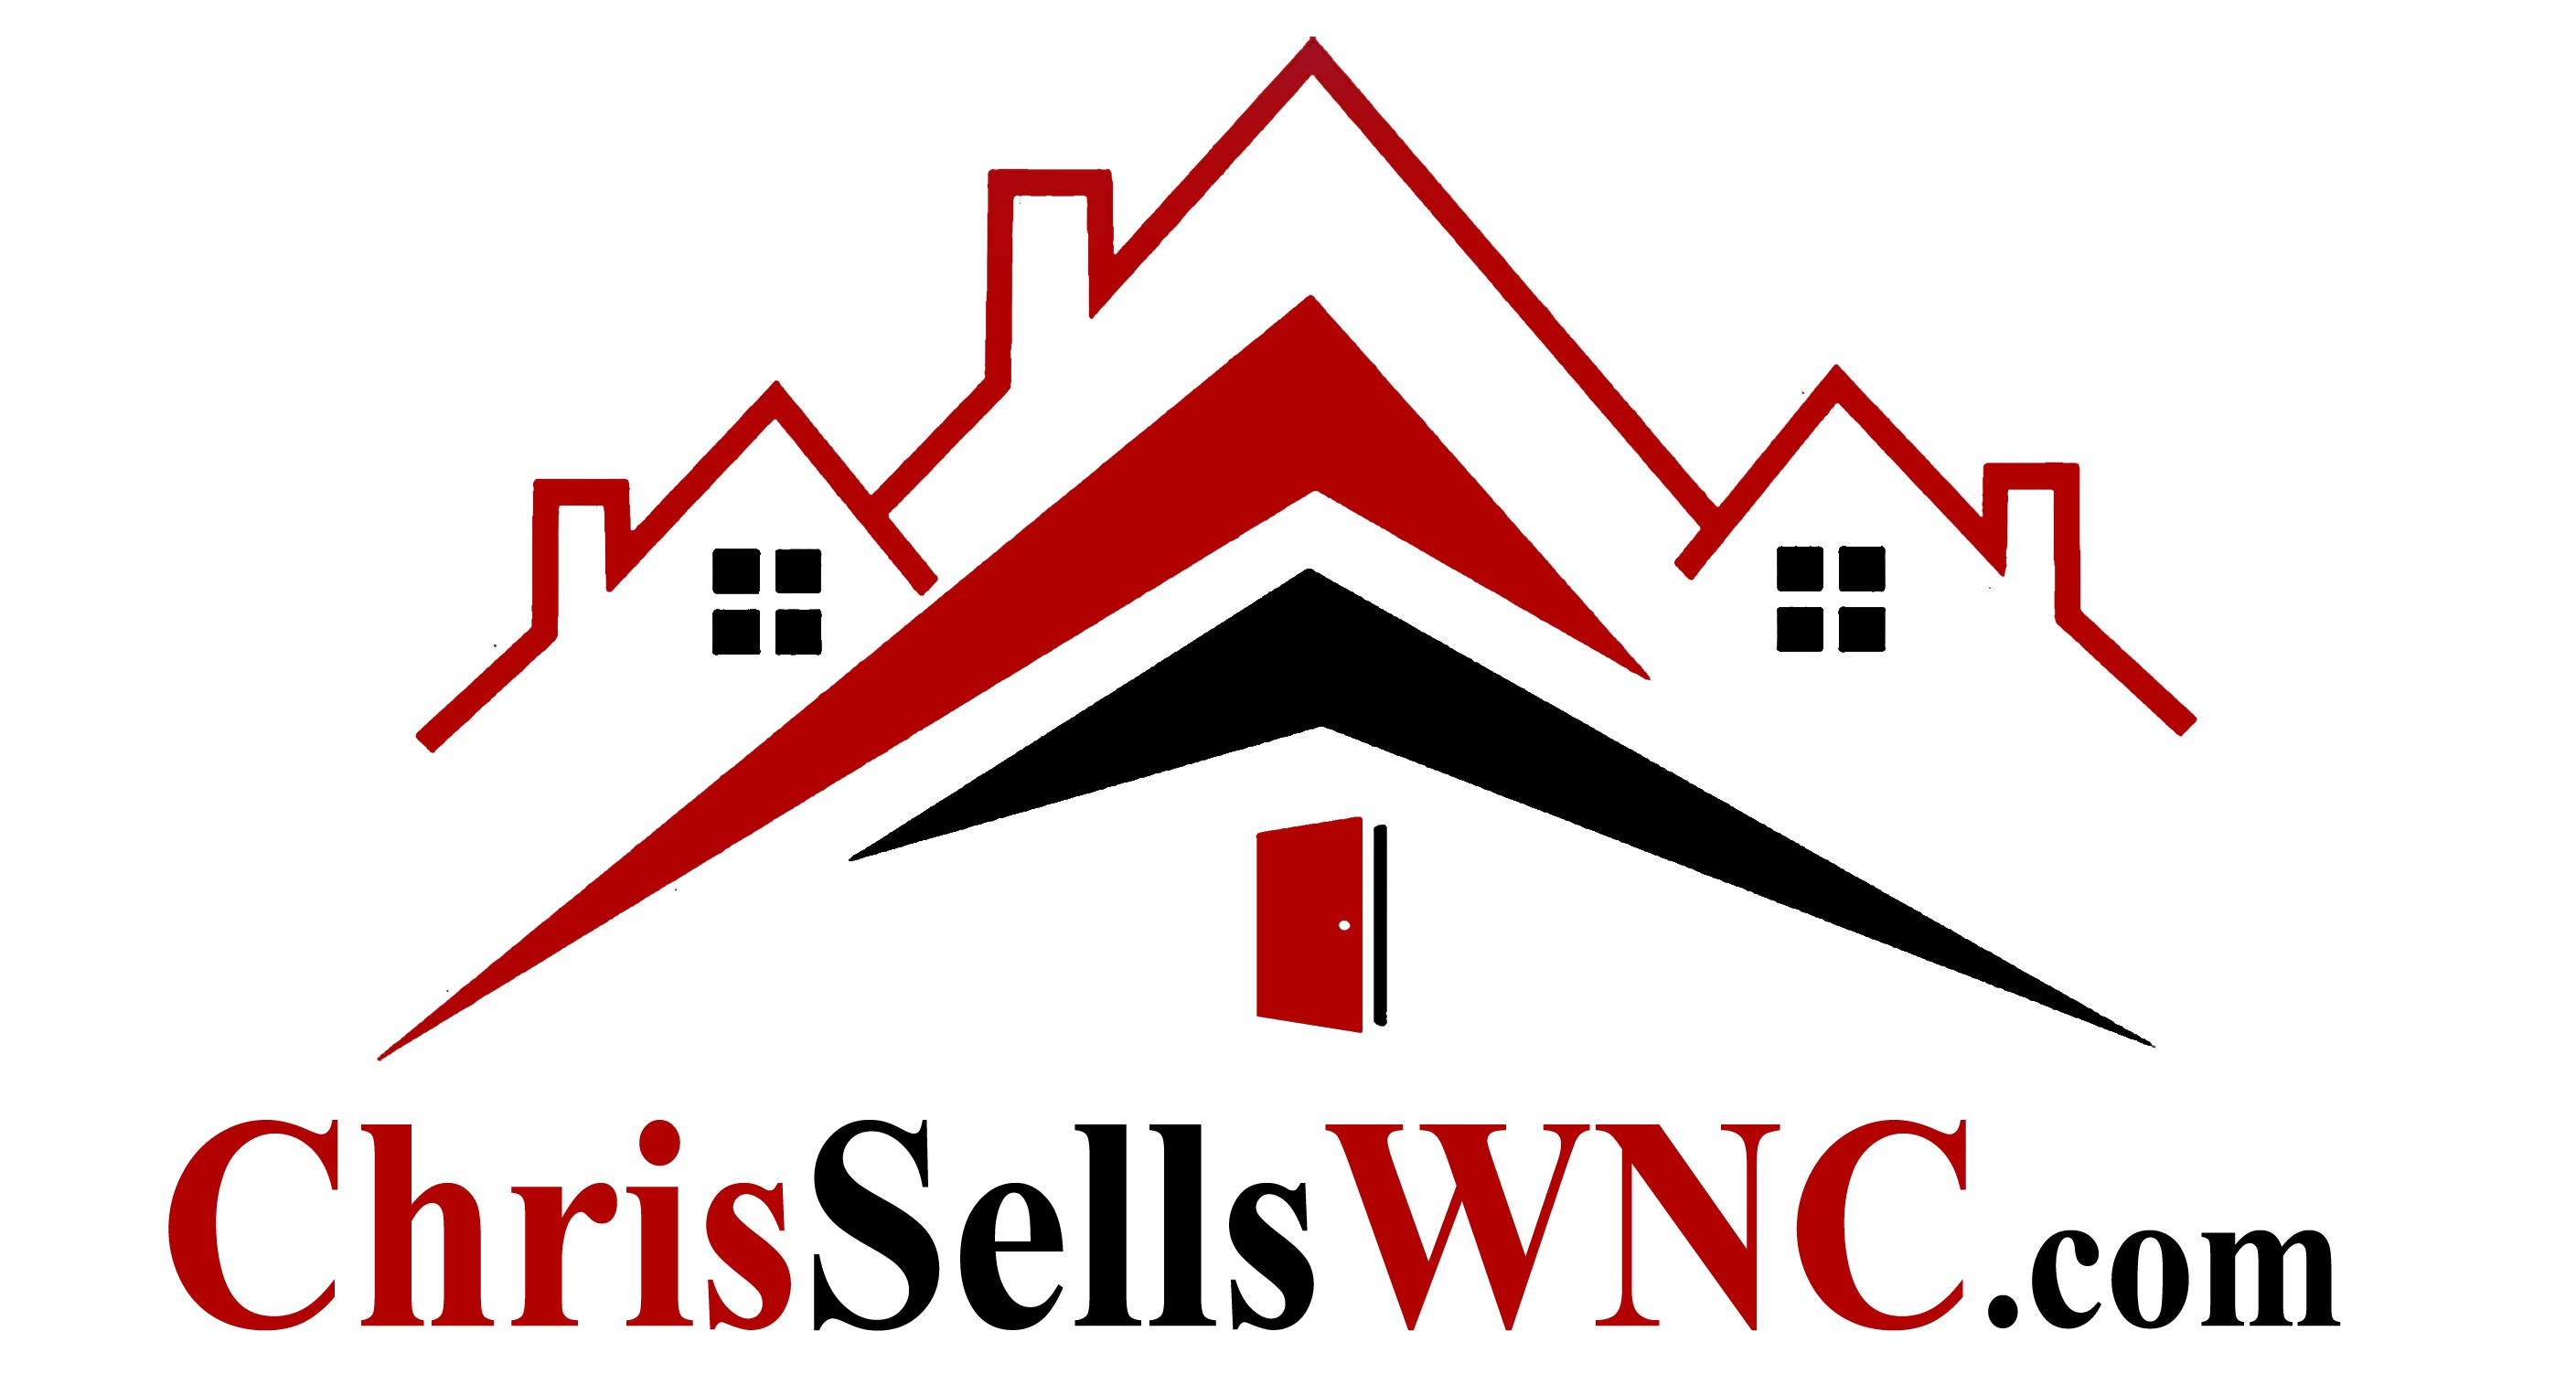 Chris Sells WNC! Homes for Sale, Realtor, Houses for Sale